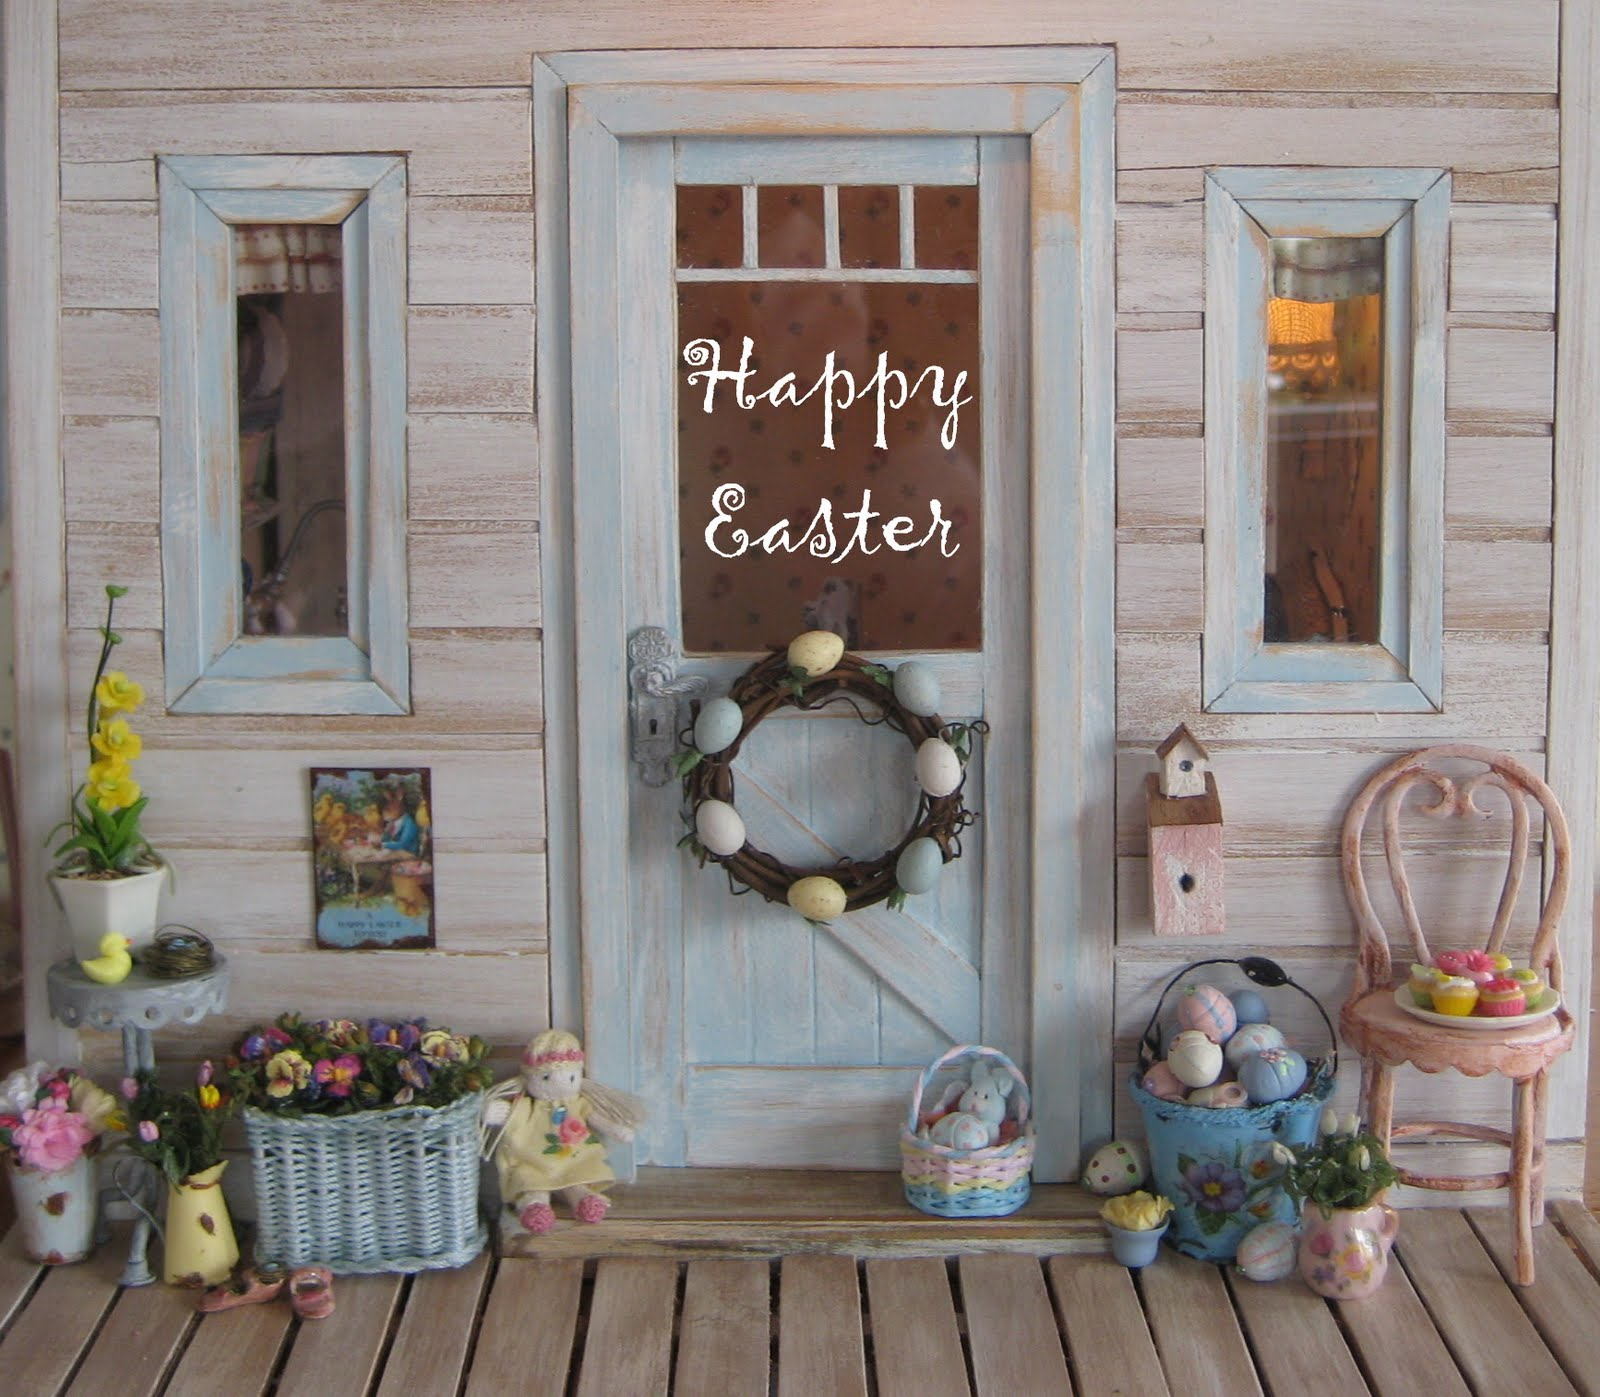 Liberty biberty happy easter for Easter decorations ideas for the home